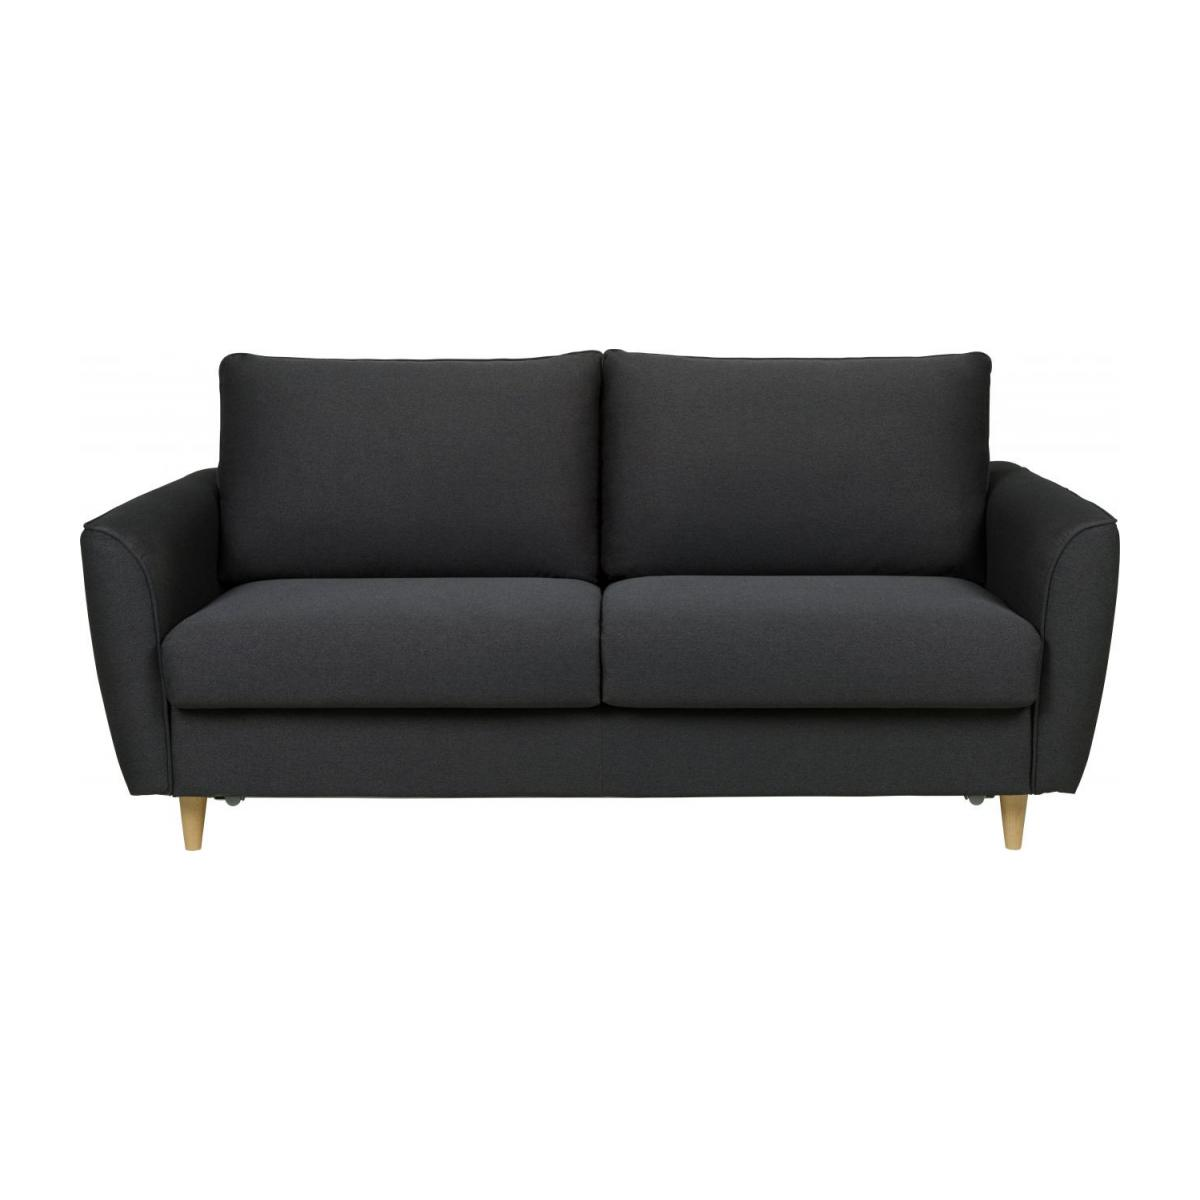 3 seater Sofa Bed with slatted base n°3